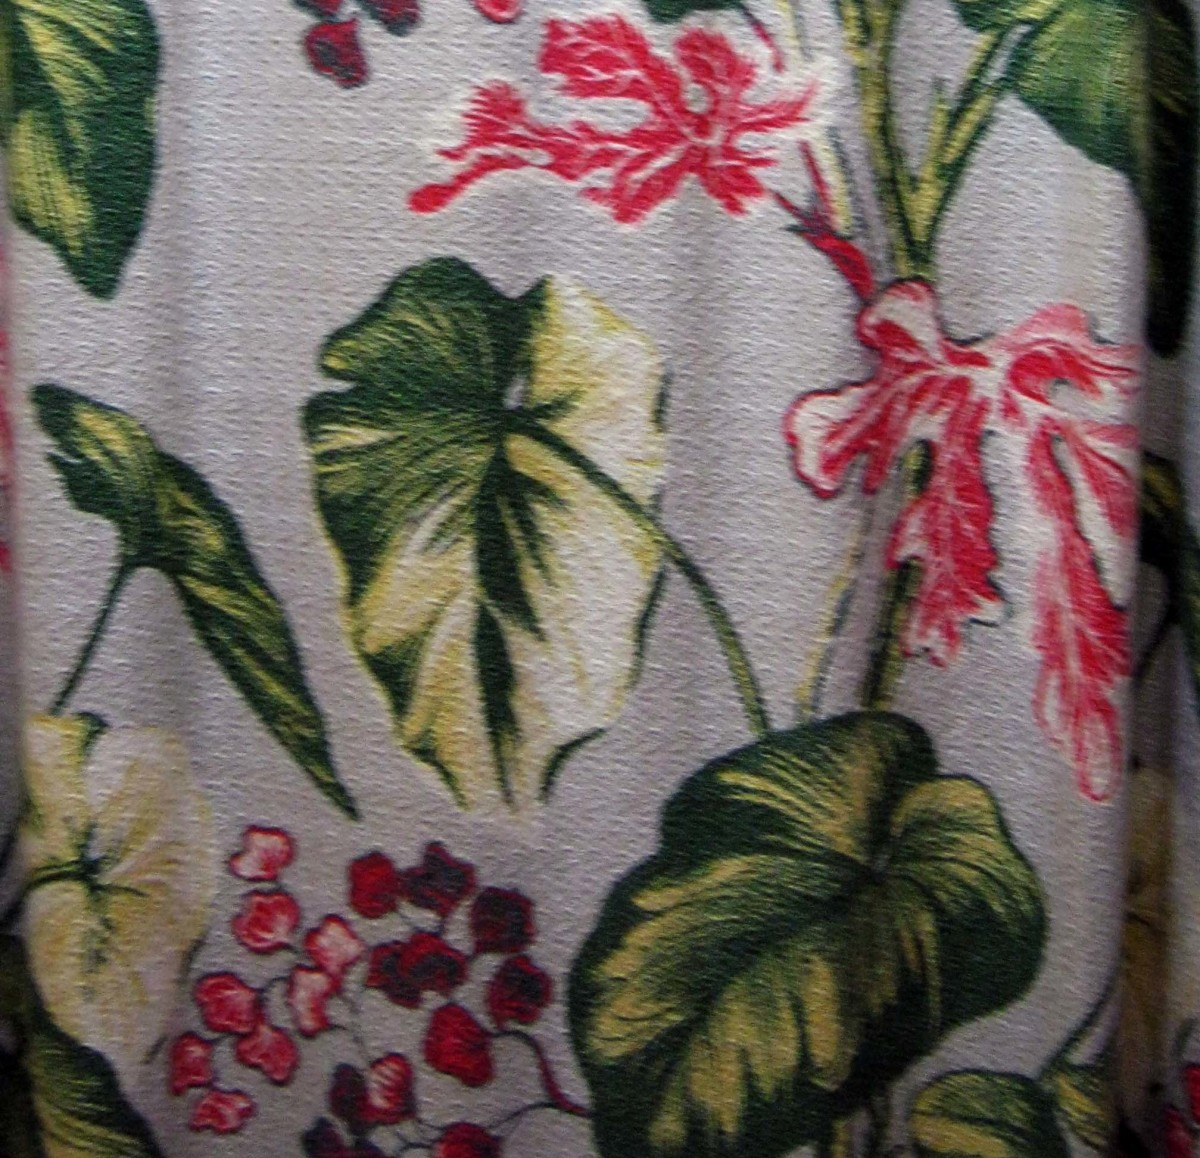 Tropical prints popped up in clothing as well as in home decor fabrics like this tropical print barkcloth